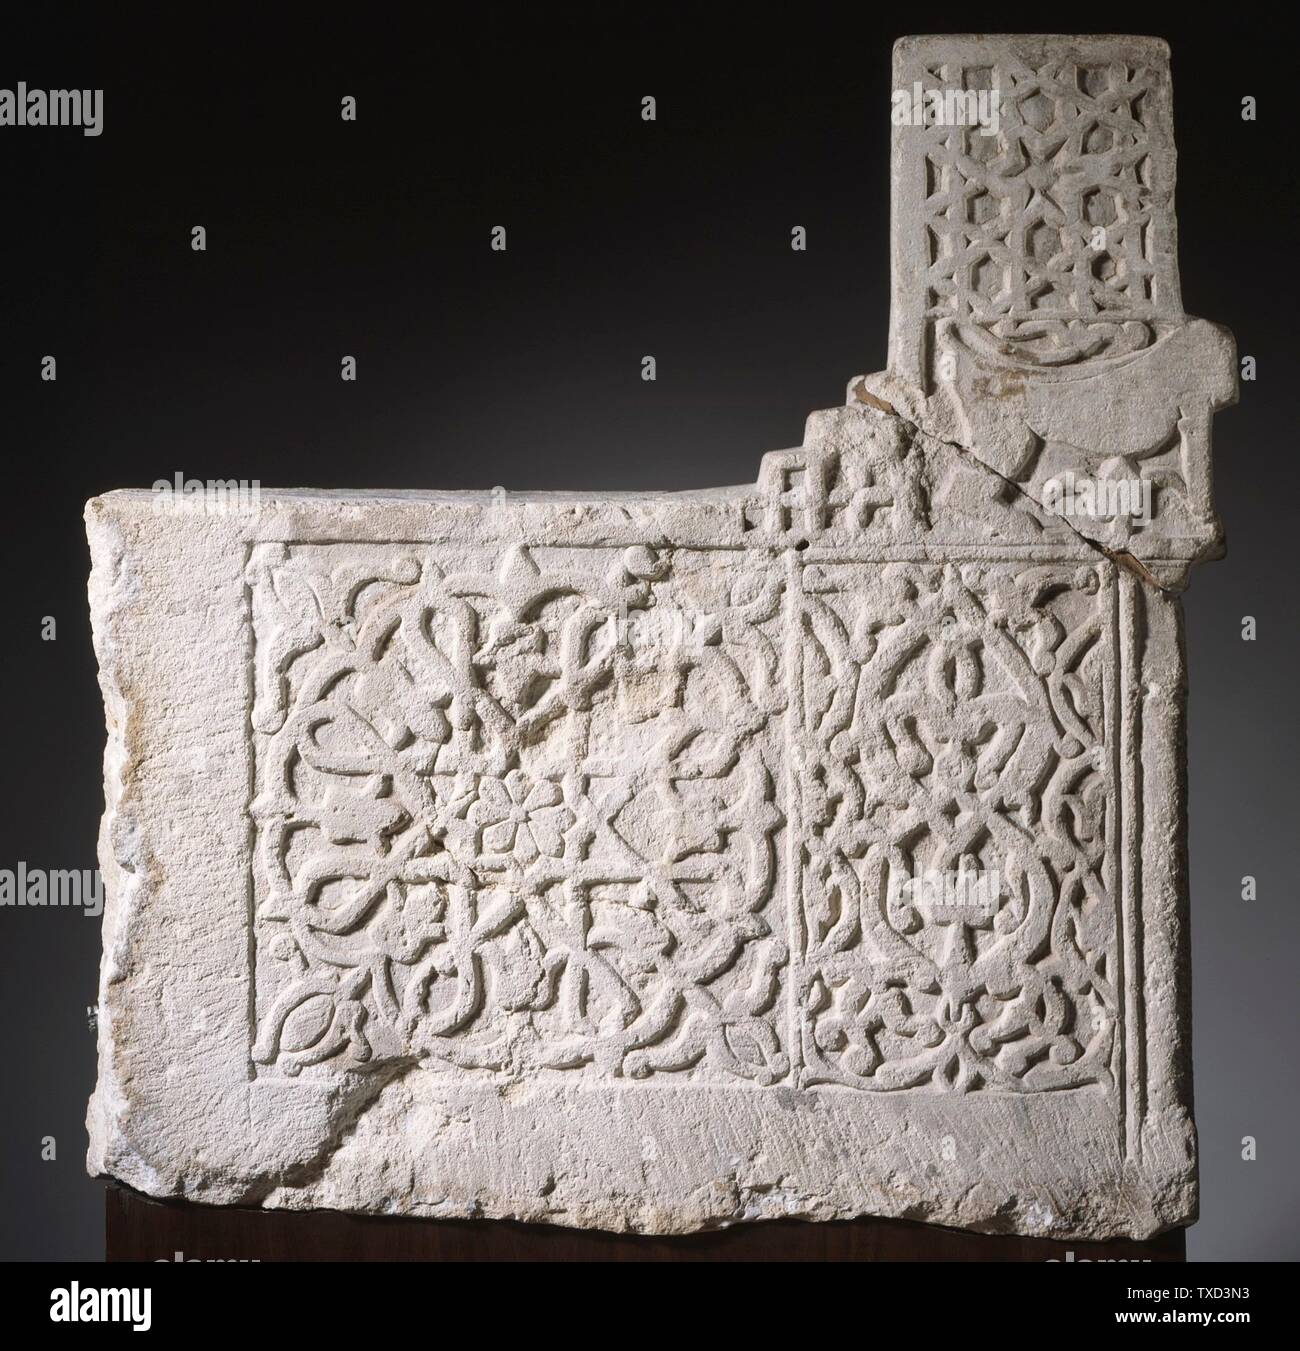 'Stair Riser (image 6 of 6); English:  Iran, 13th-early 14th century Architecture; Architectural Elements Limestone, carved The Nasli M. Heeramaneck Collection, gift of Joan Palevsky (M.73.5.5) Islamic Art Currently on public view: Ahmanson Building, floor 4; 13th-early 14th century; ' - Stock Image